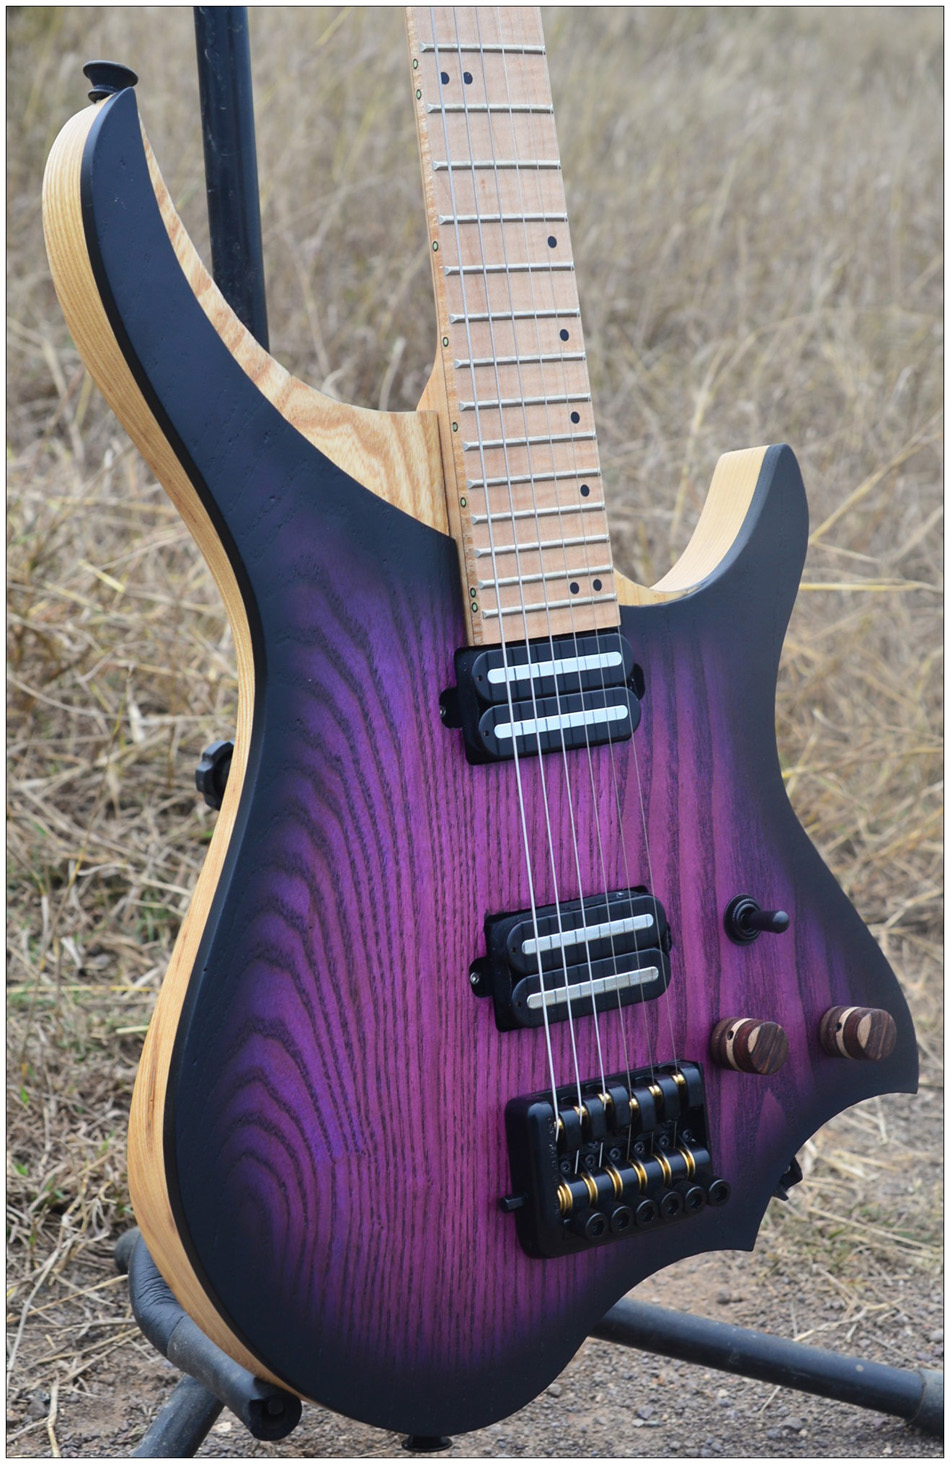 NK Headless Electric Guitar Steinberger Style Model Purple Burst Color Flame Maple Neck In Stock Guitar